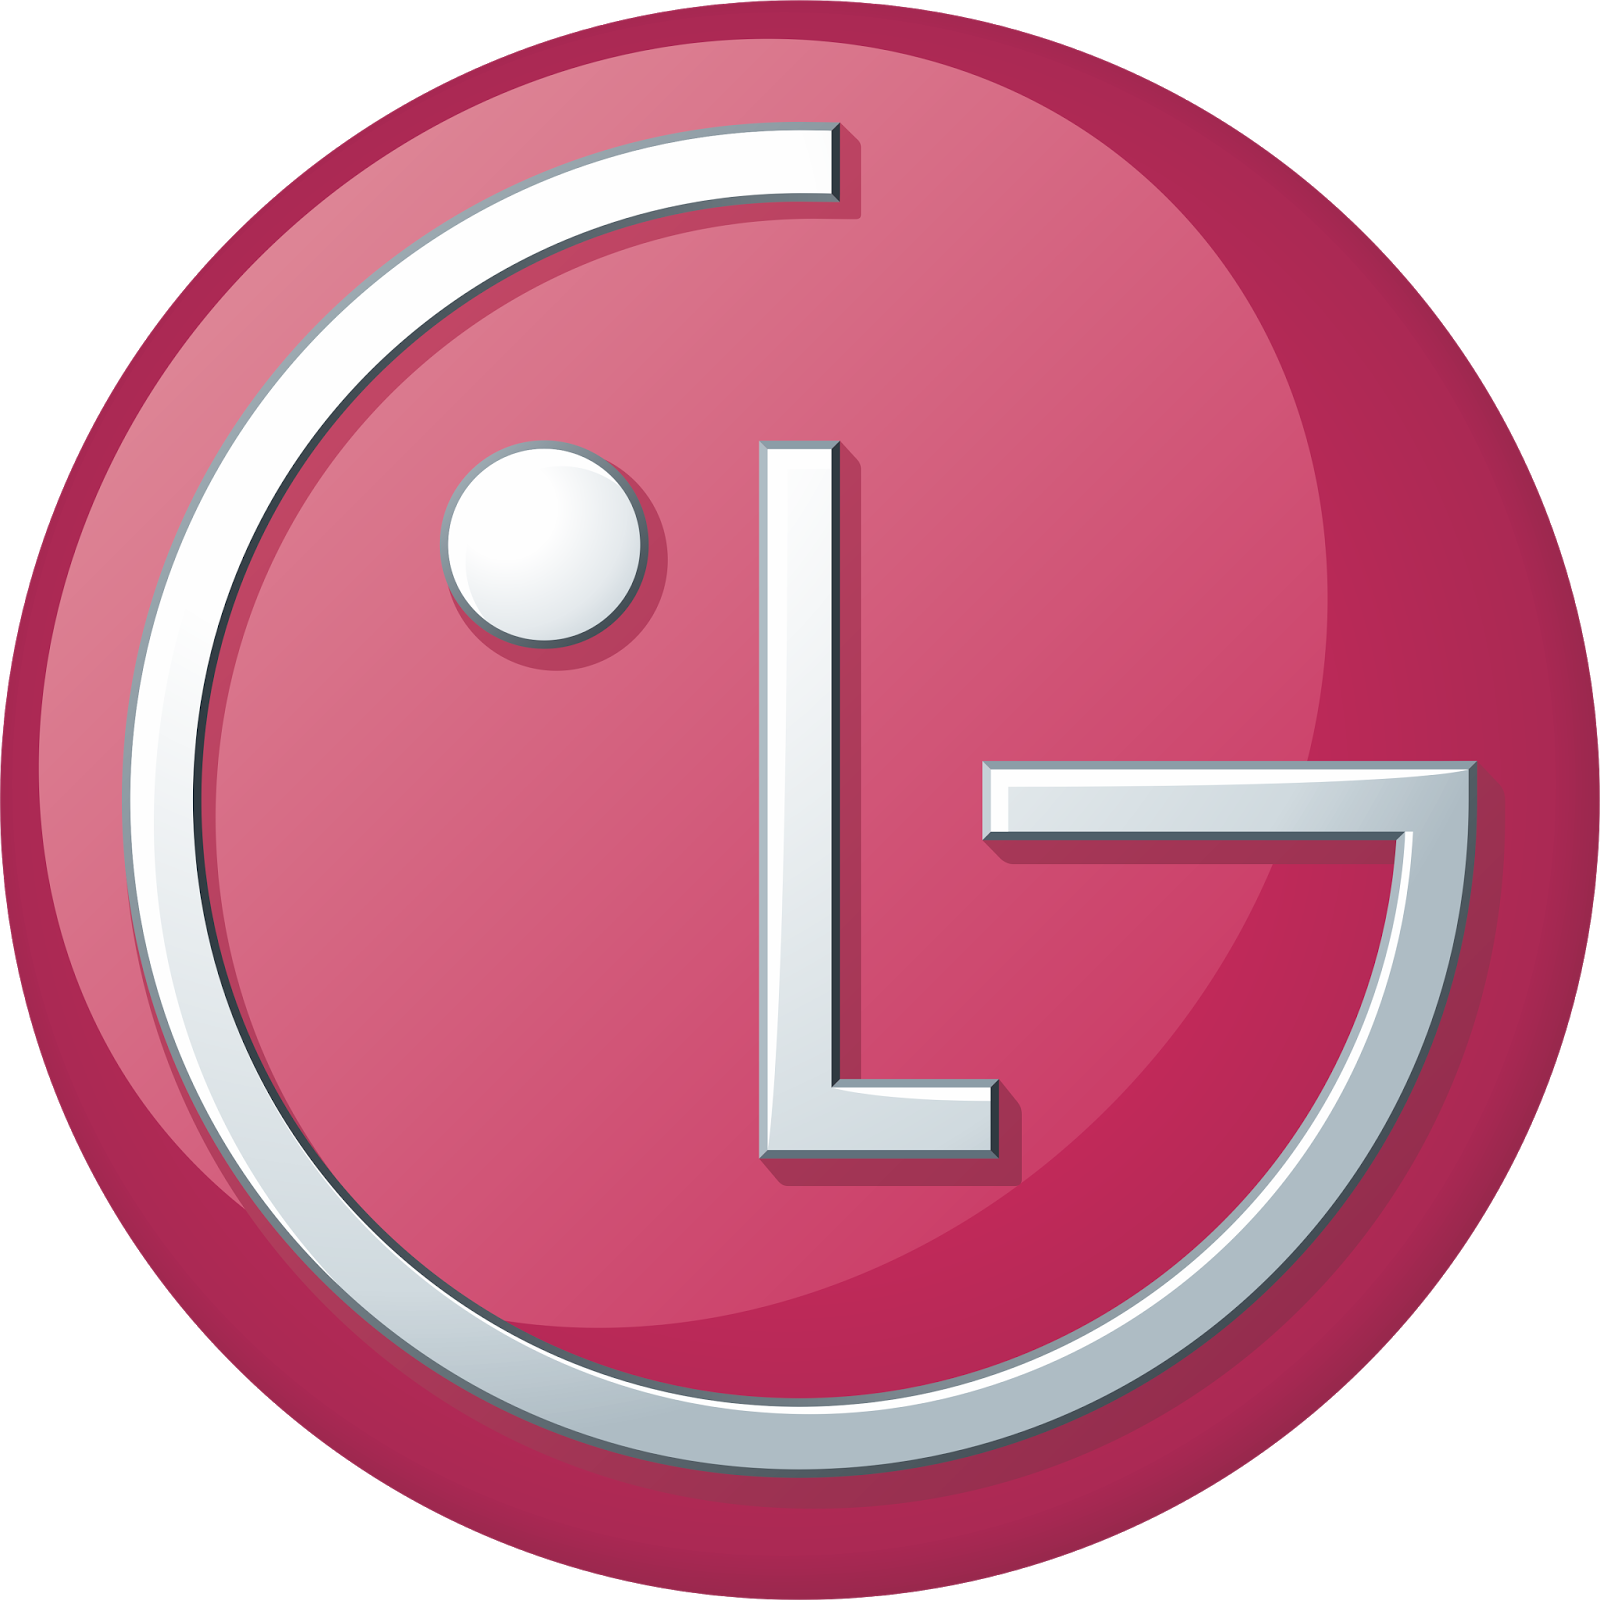 lg logo, how strong brand logo can help grow your business #14423